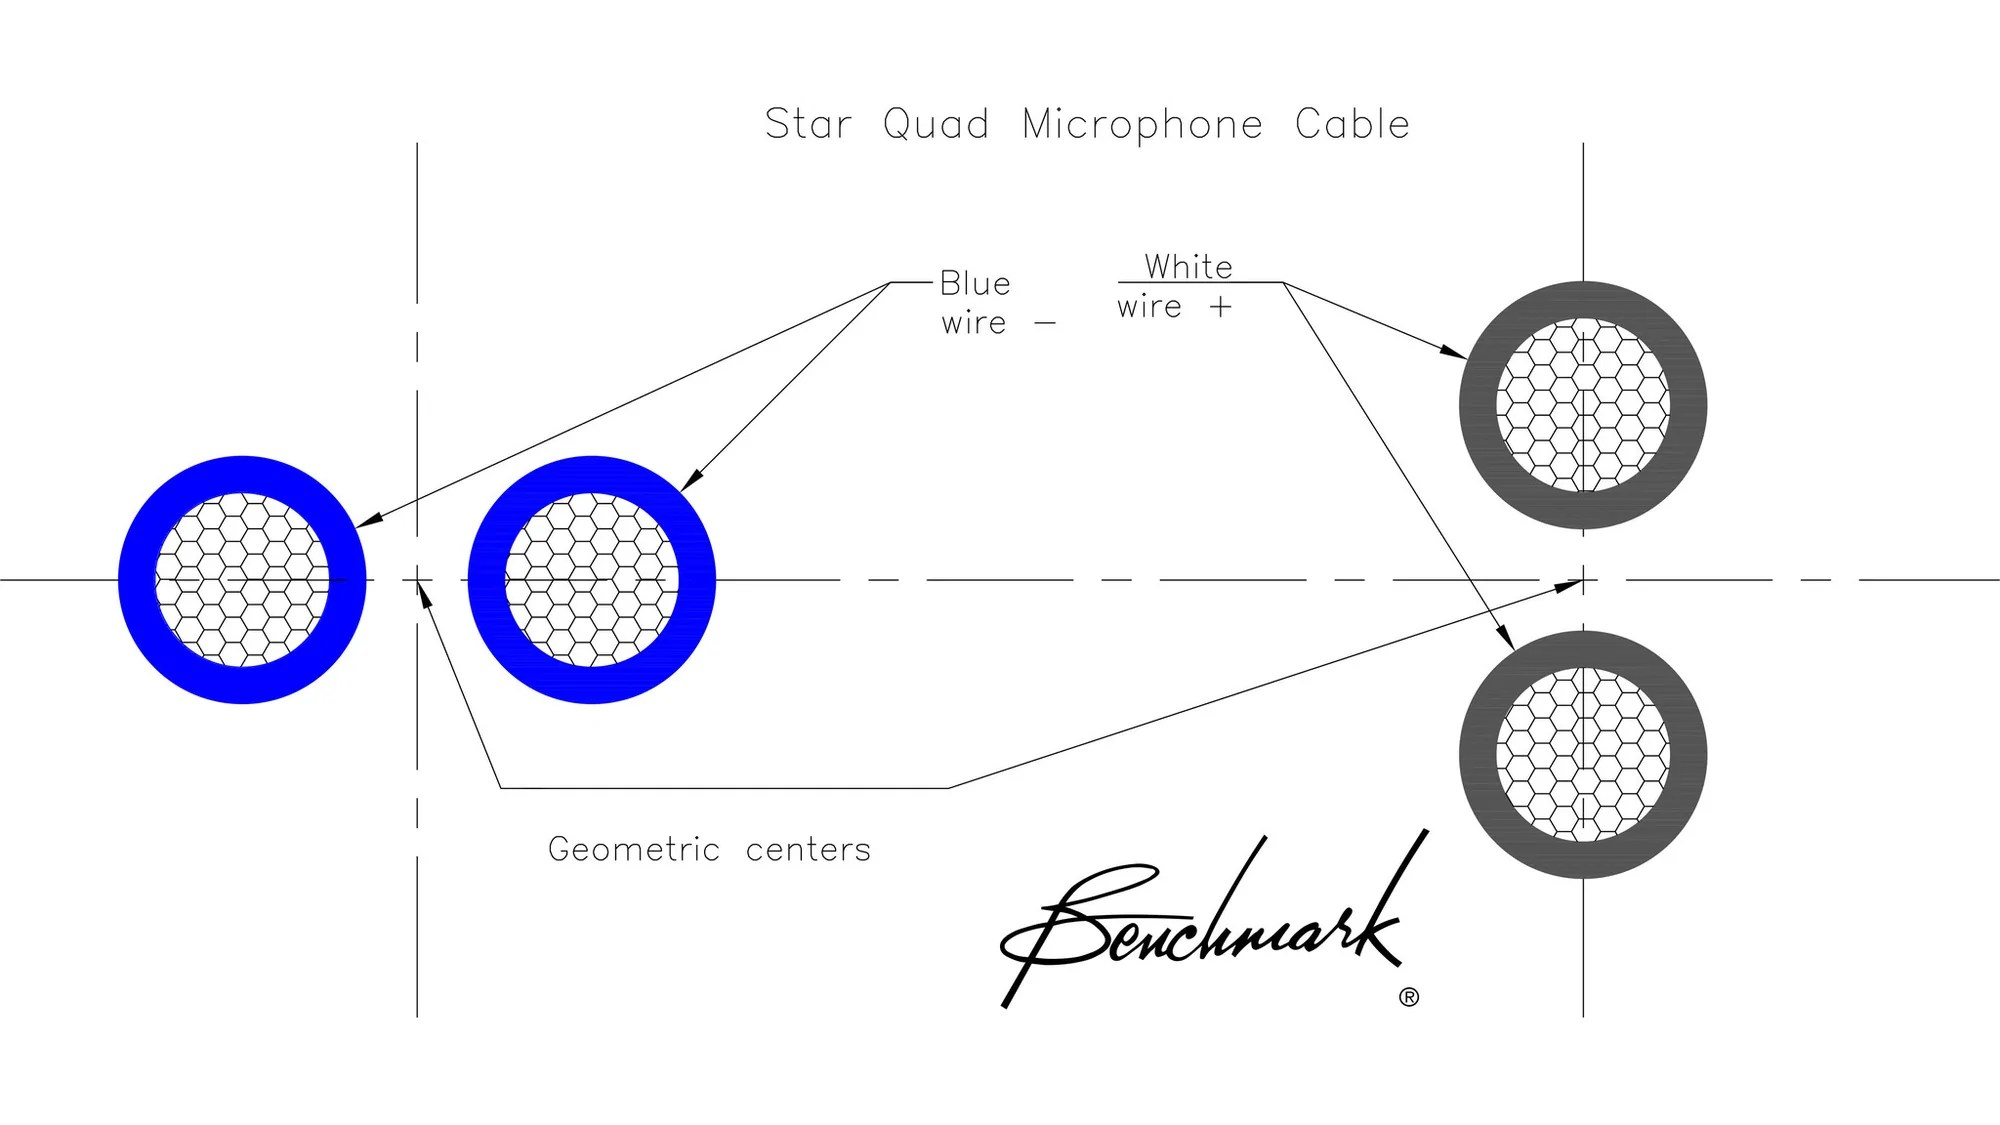 hight resolution of benchmark studio stage starquad xlr cable for analog audio balanced star quad wiring diagrams